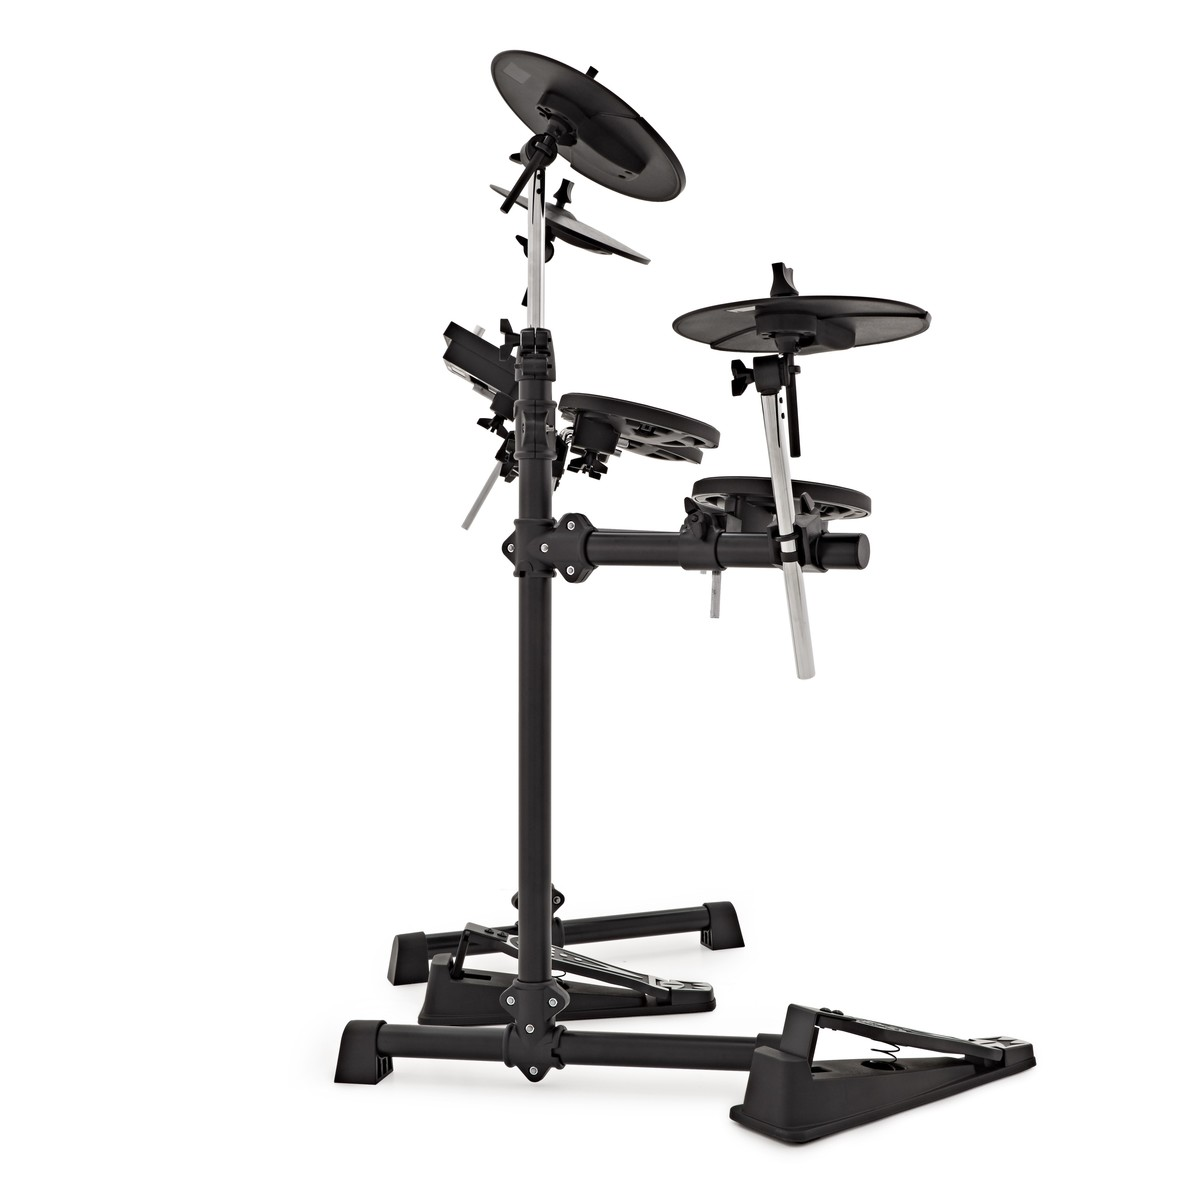 Digital drums 400 compact electronic drum kit package deal at digital drums 400 compact electronic drum kit package deal loading zoom solutioingenieria Images